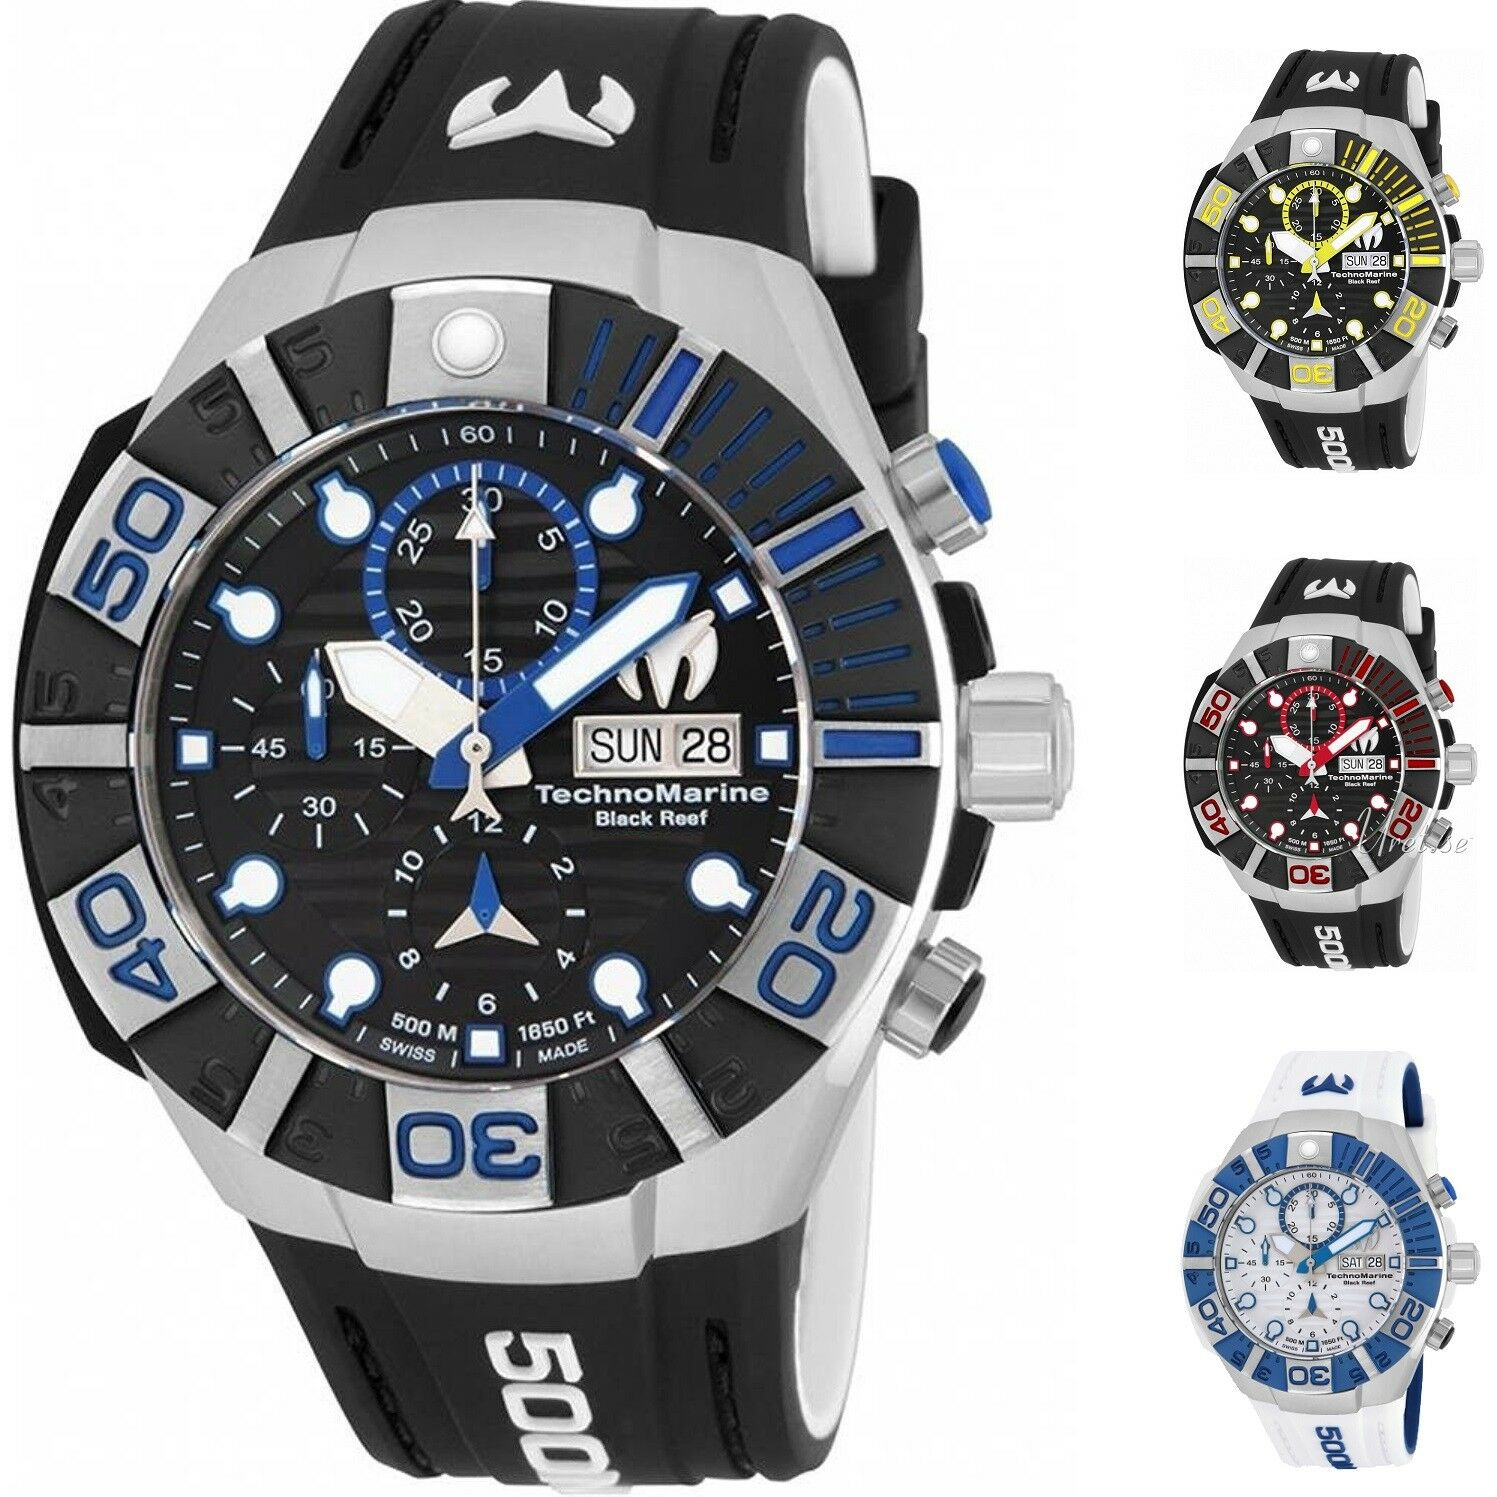 cdcc1022a Details about Technomarine Men's Swiss Automatic Chronograph 500M 45mm Watch  - Choice of Color